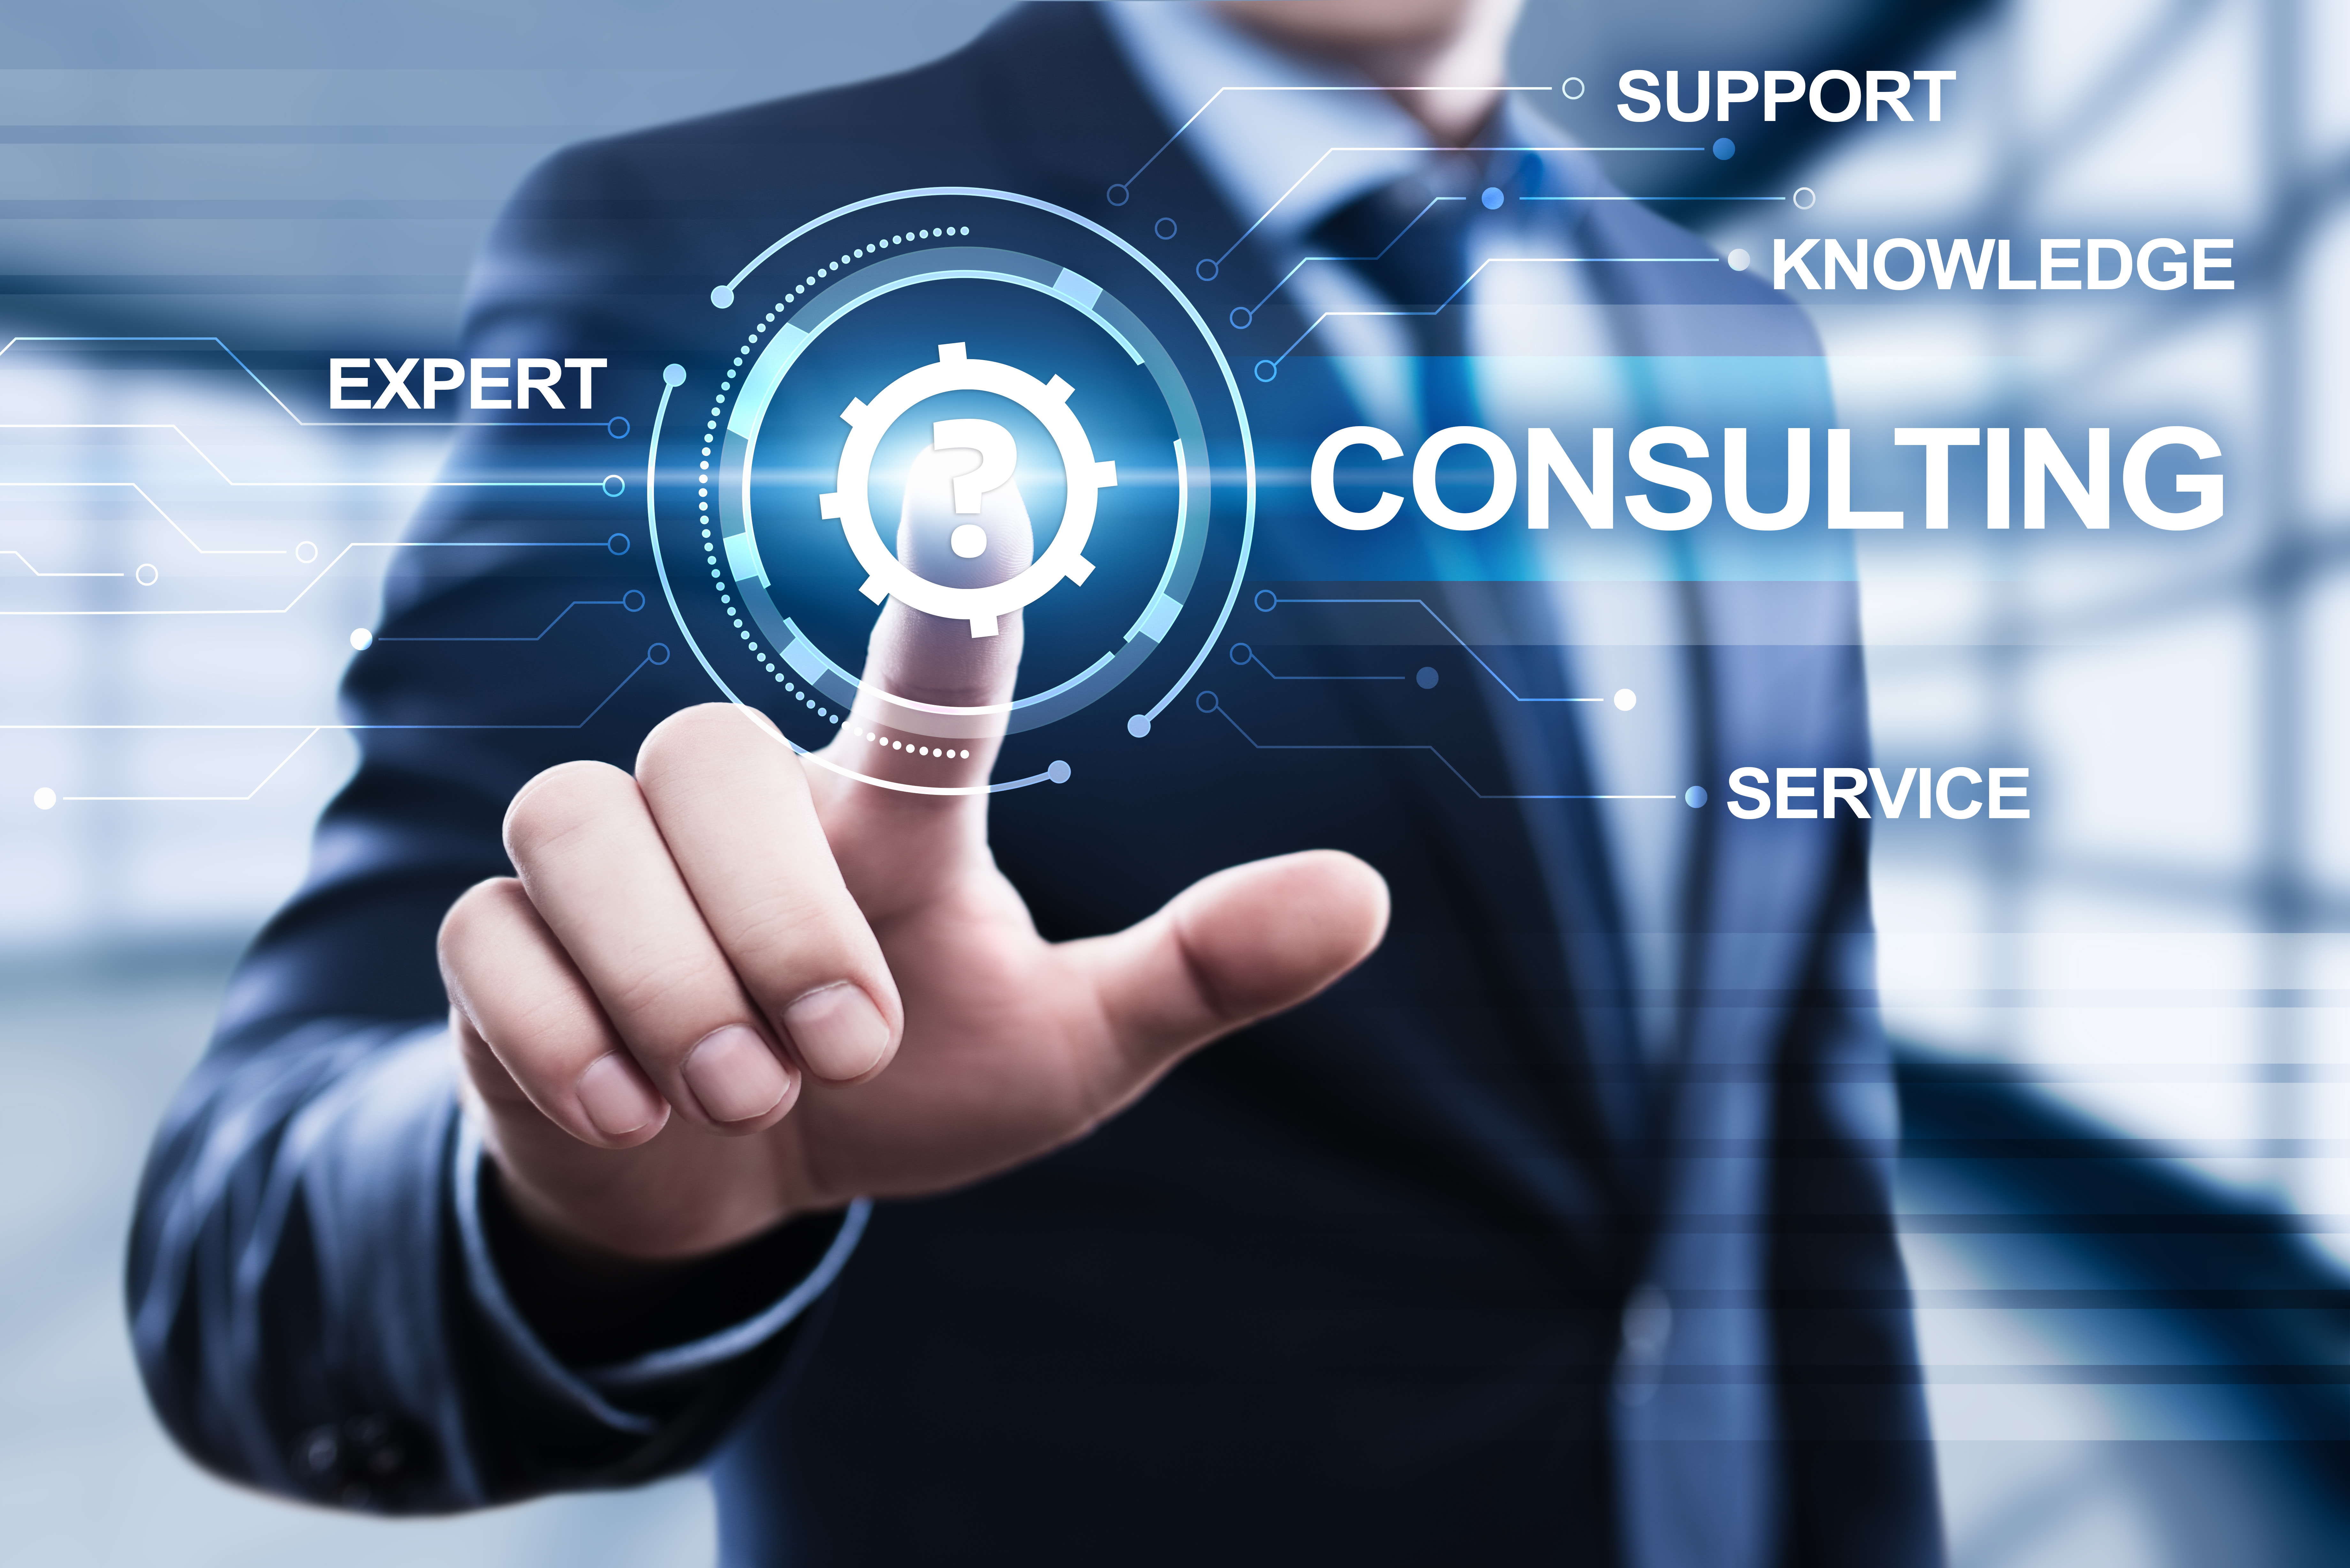 Small Business Consulting Opportunities - Be Your Own Boss